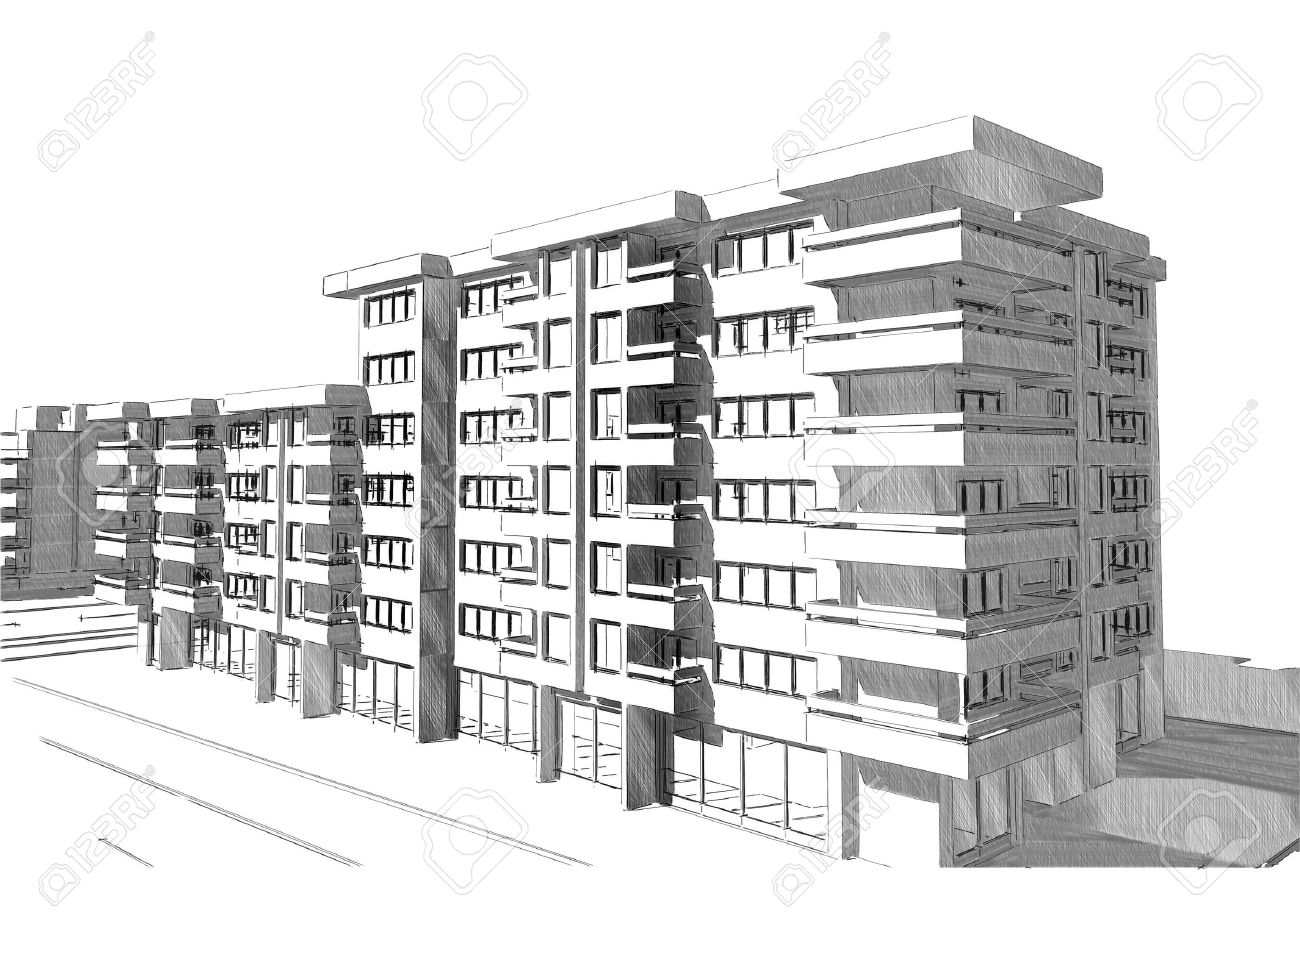 Sketch idea drawing of modern residential building